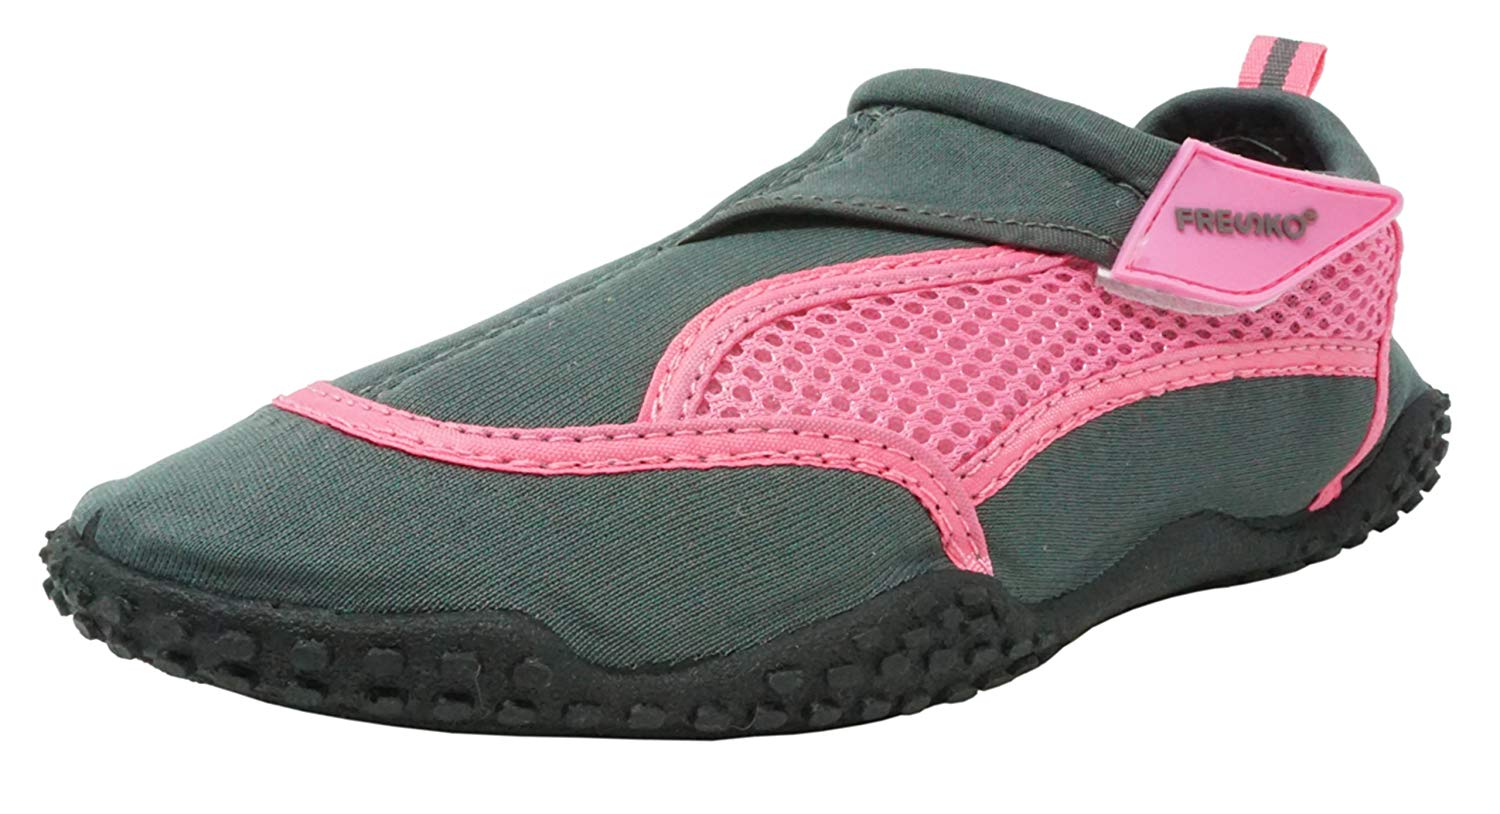 c9568249d31a Get Quotations · Fresko Toddler and Little Kids Water Shoes for Boys and  Girls